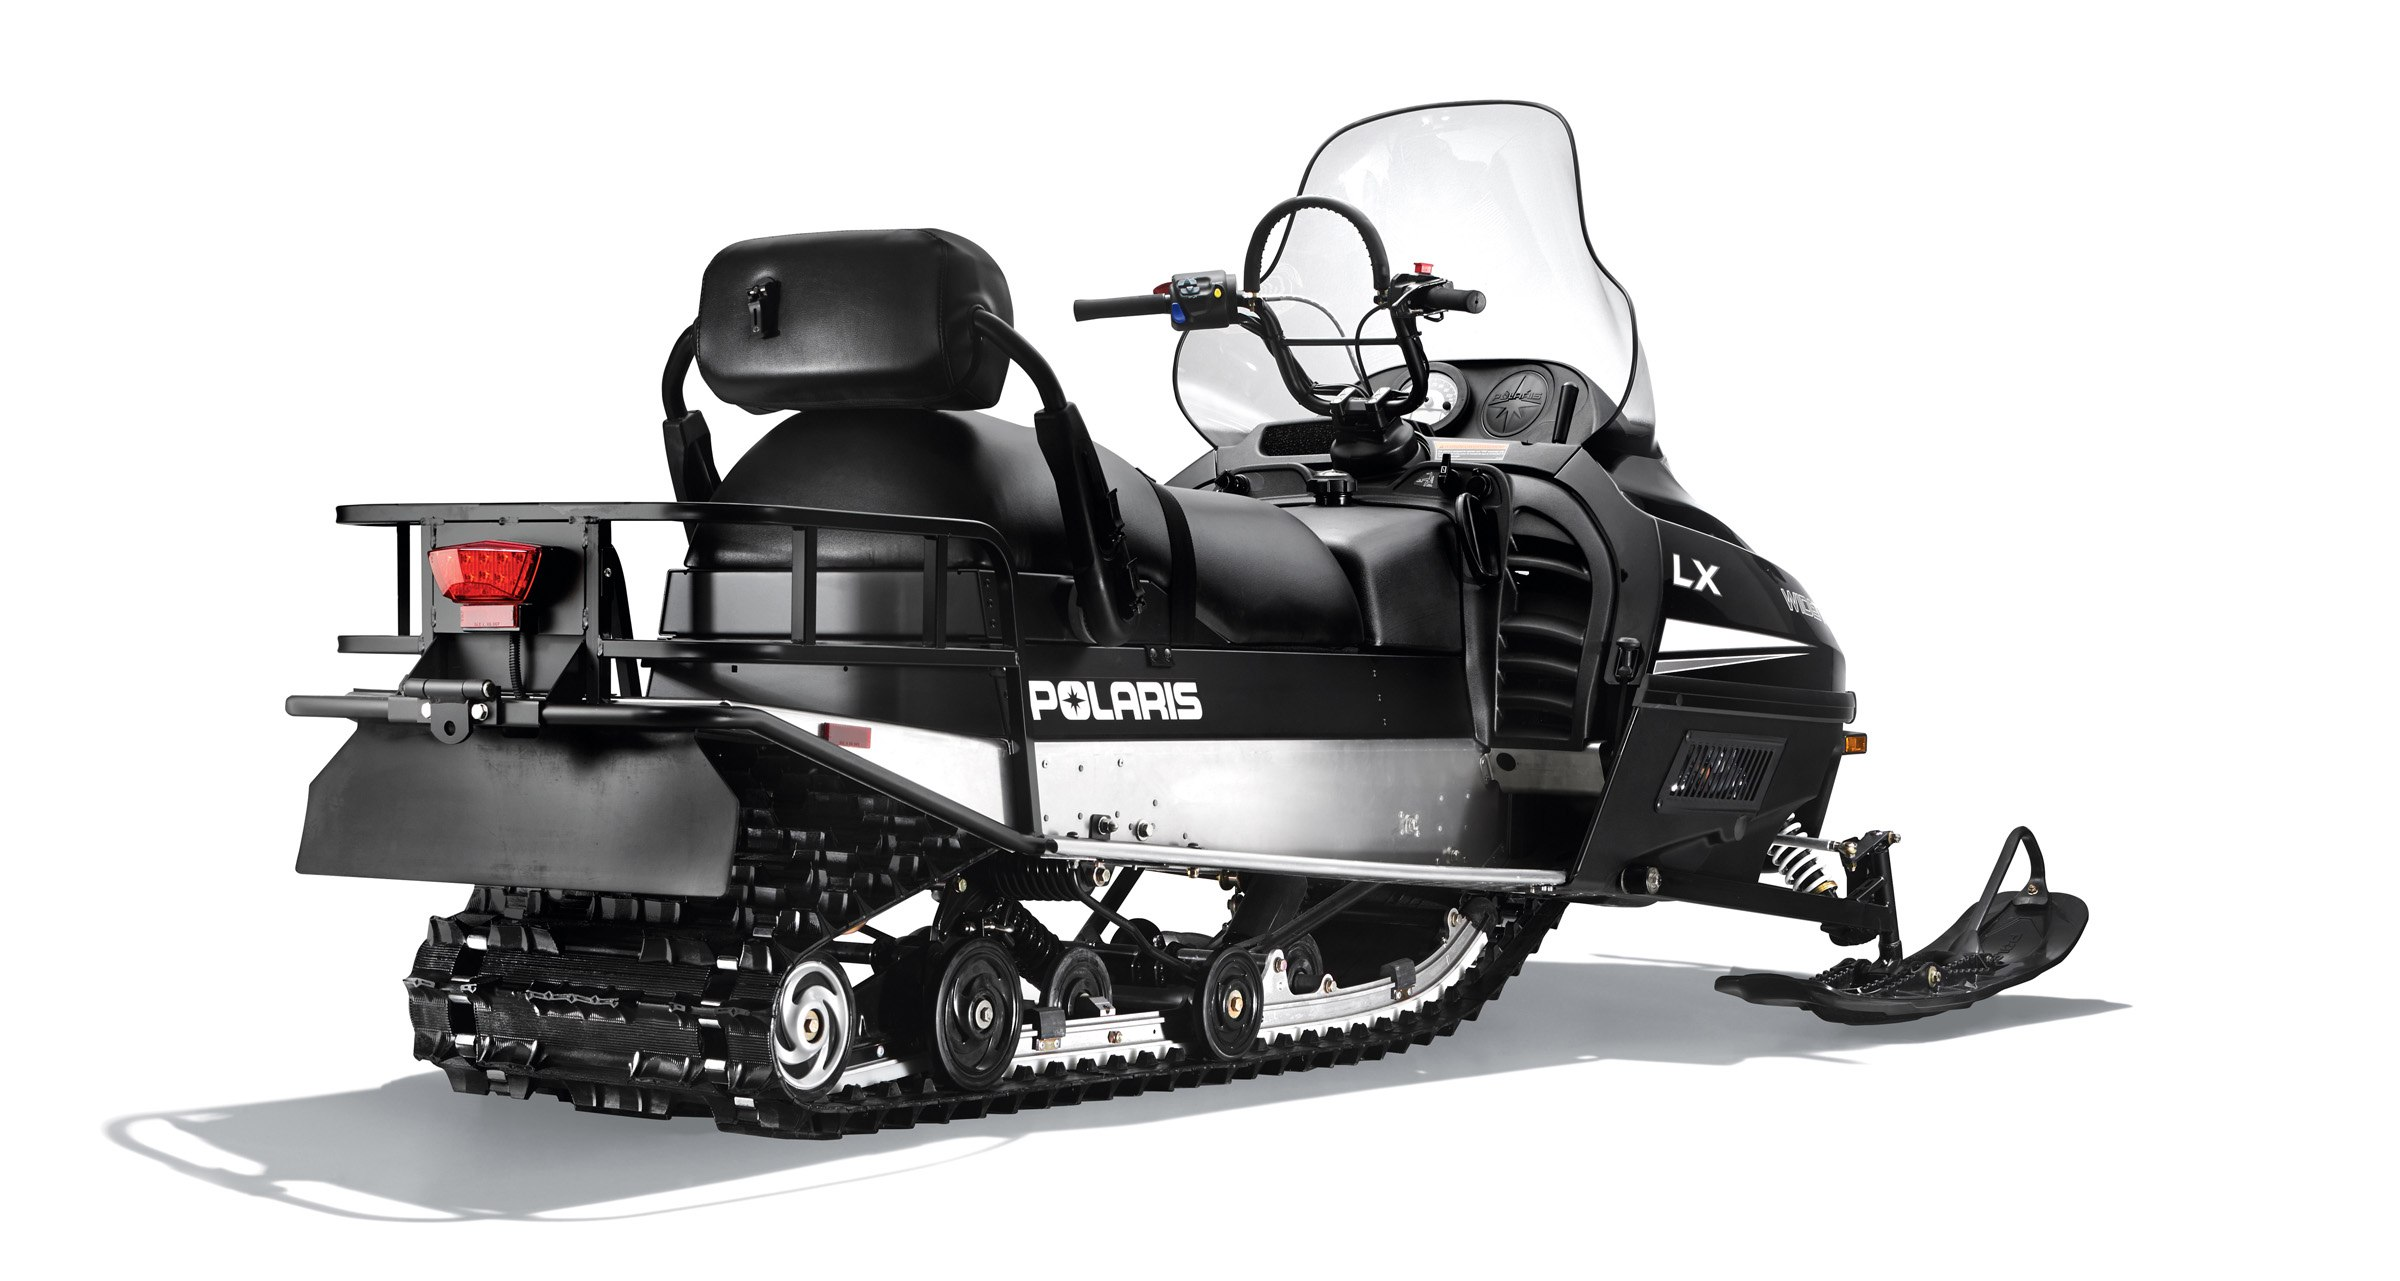 2016 Polaris 550 Widetrak LX ES in Billings, Montana